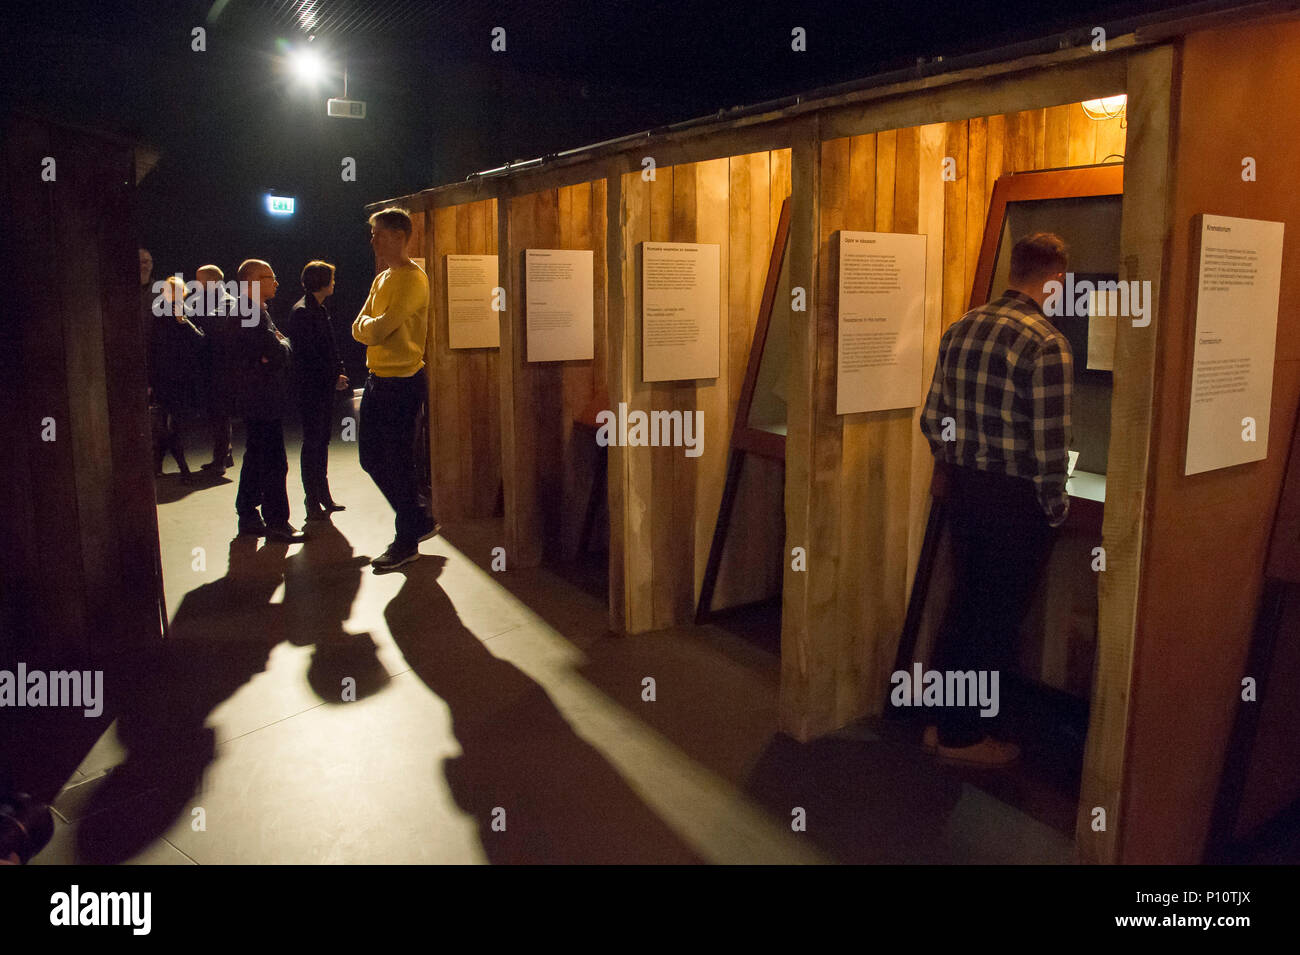 Nazi German extermination camps in occupied Poland as a part of exhibion in Museum of the Second World War in Gdansk, Poland. January 28th 2017  © Woj - Stock Image